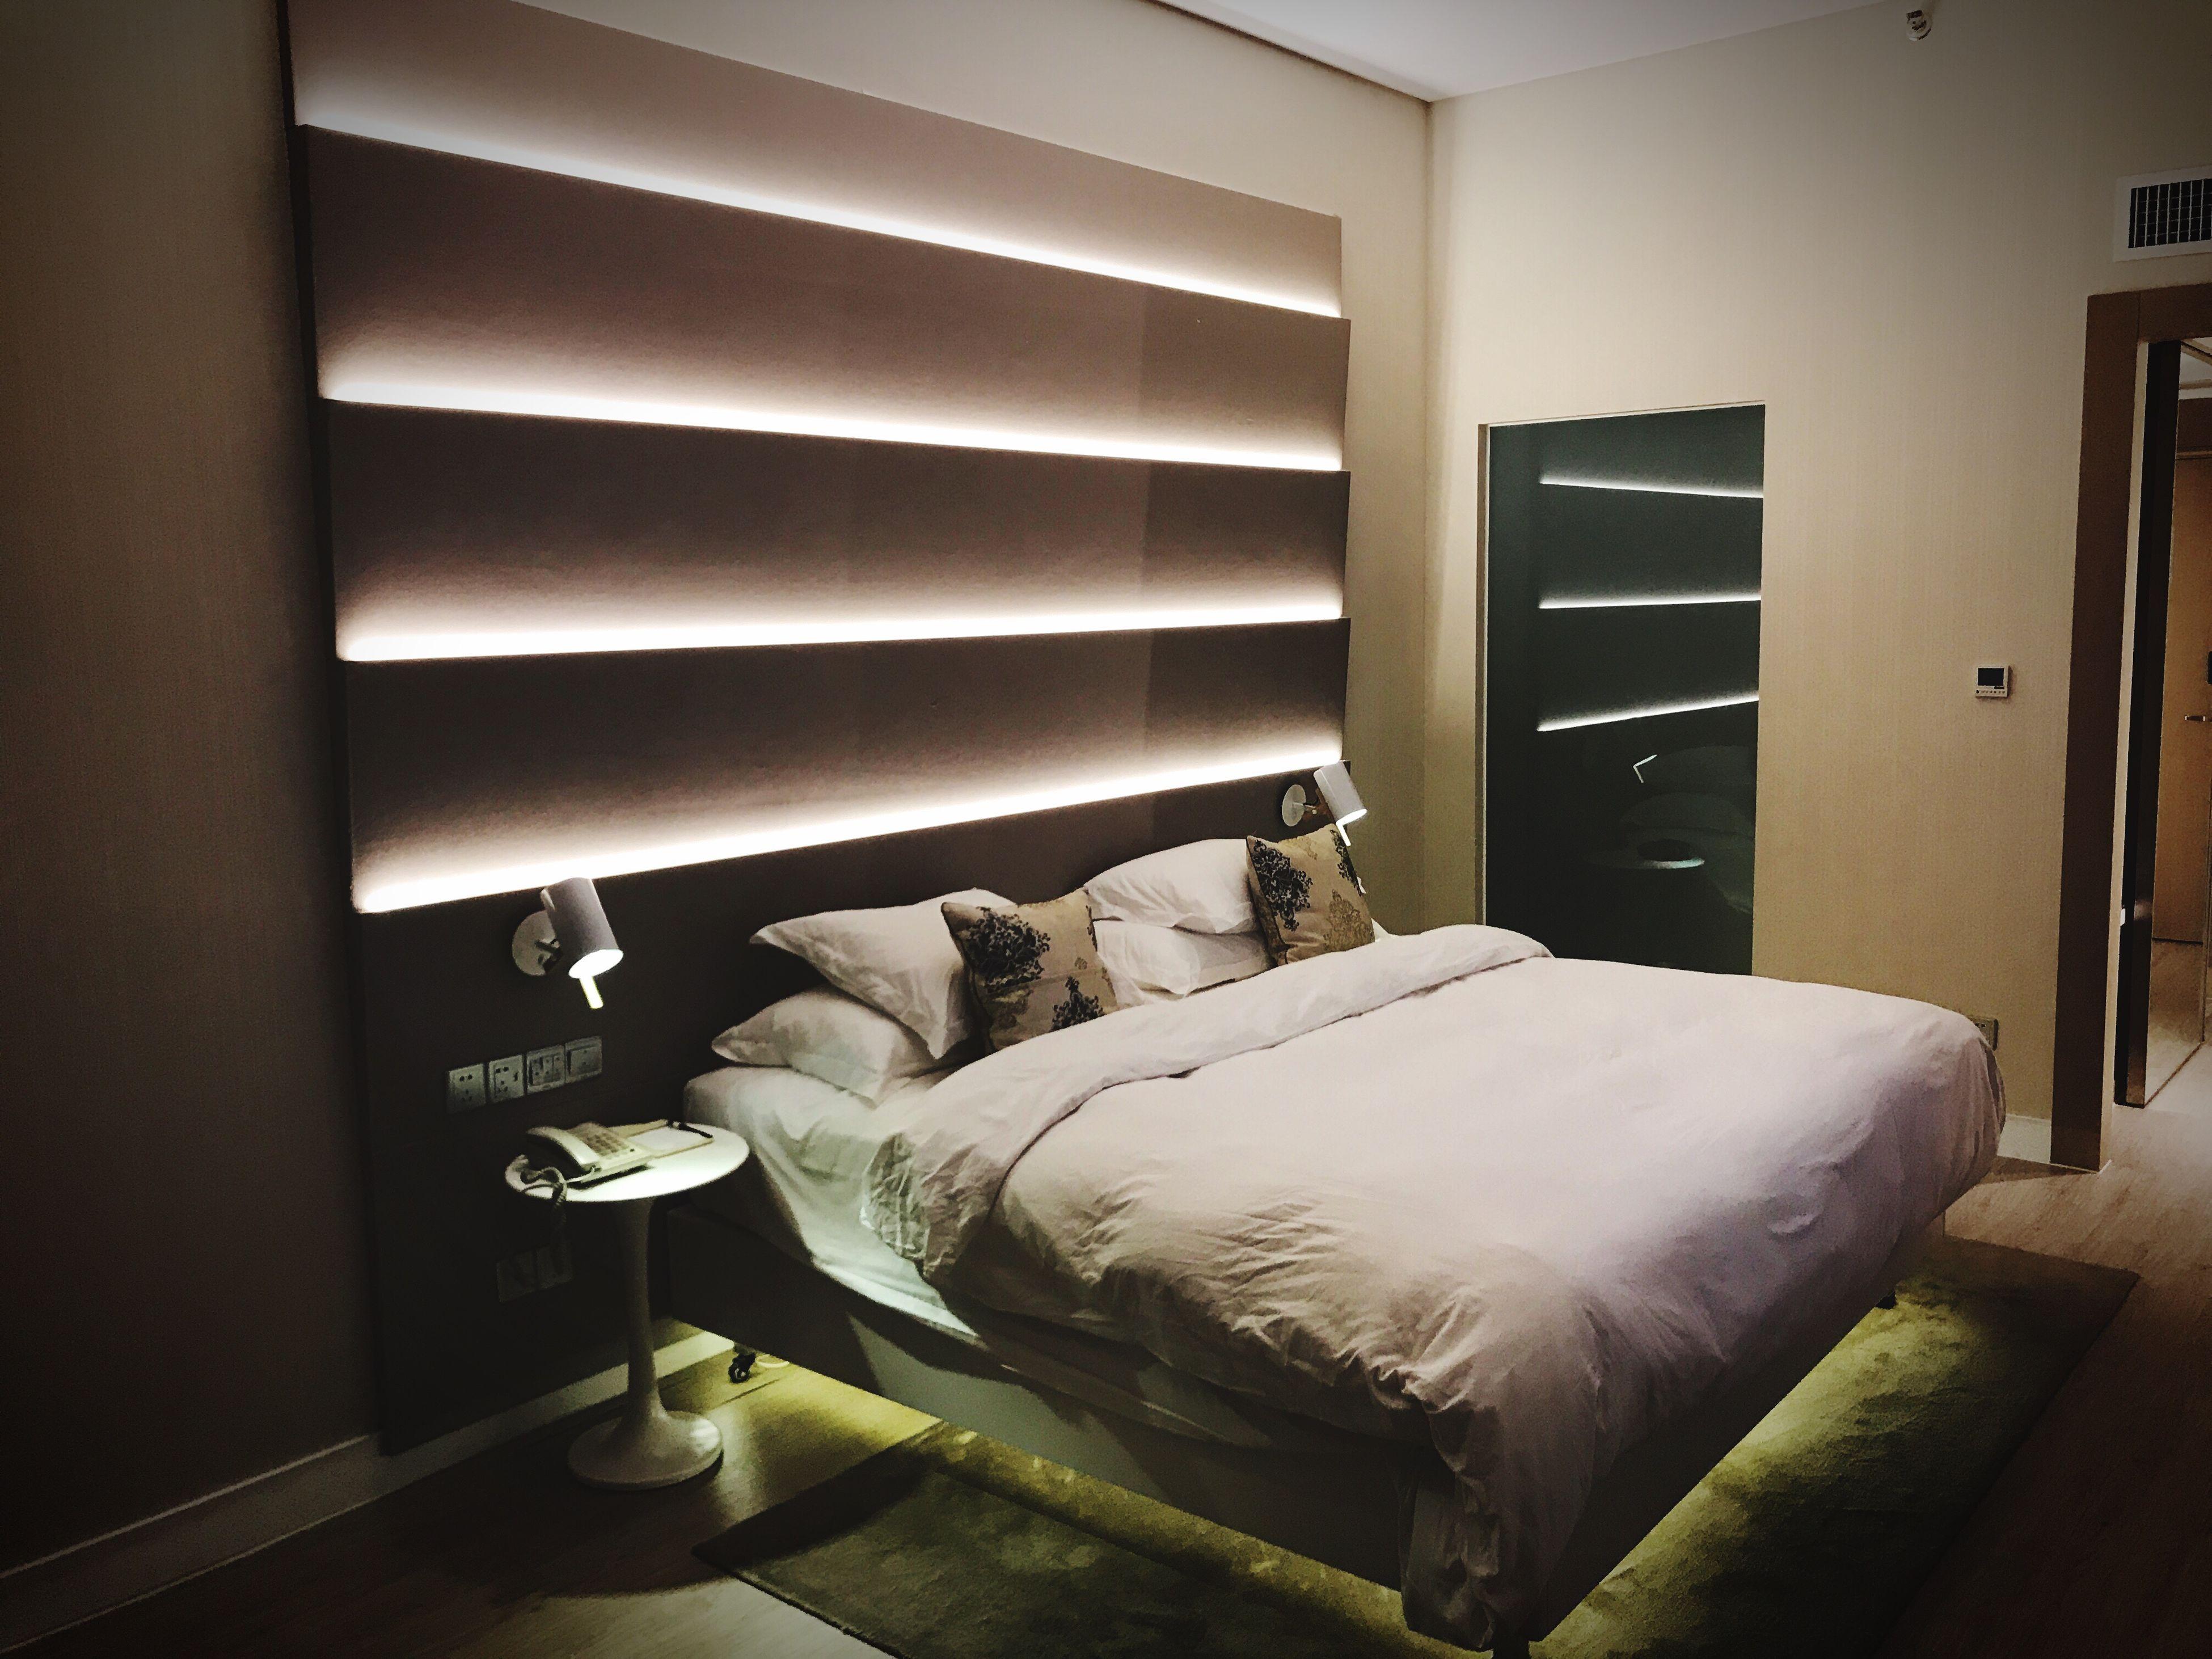 indoors, bedroom, bed, home interior, home showcase interior, pillow, domestic life, no people, day, architecture, mammal